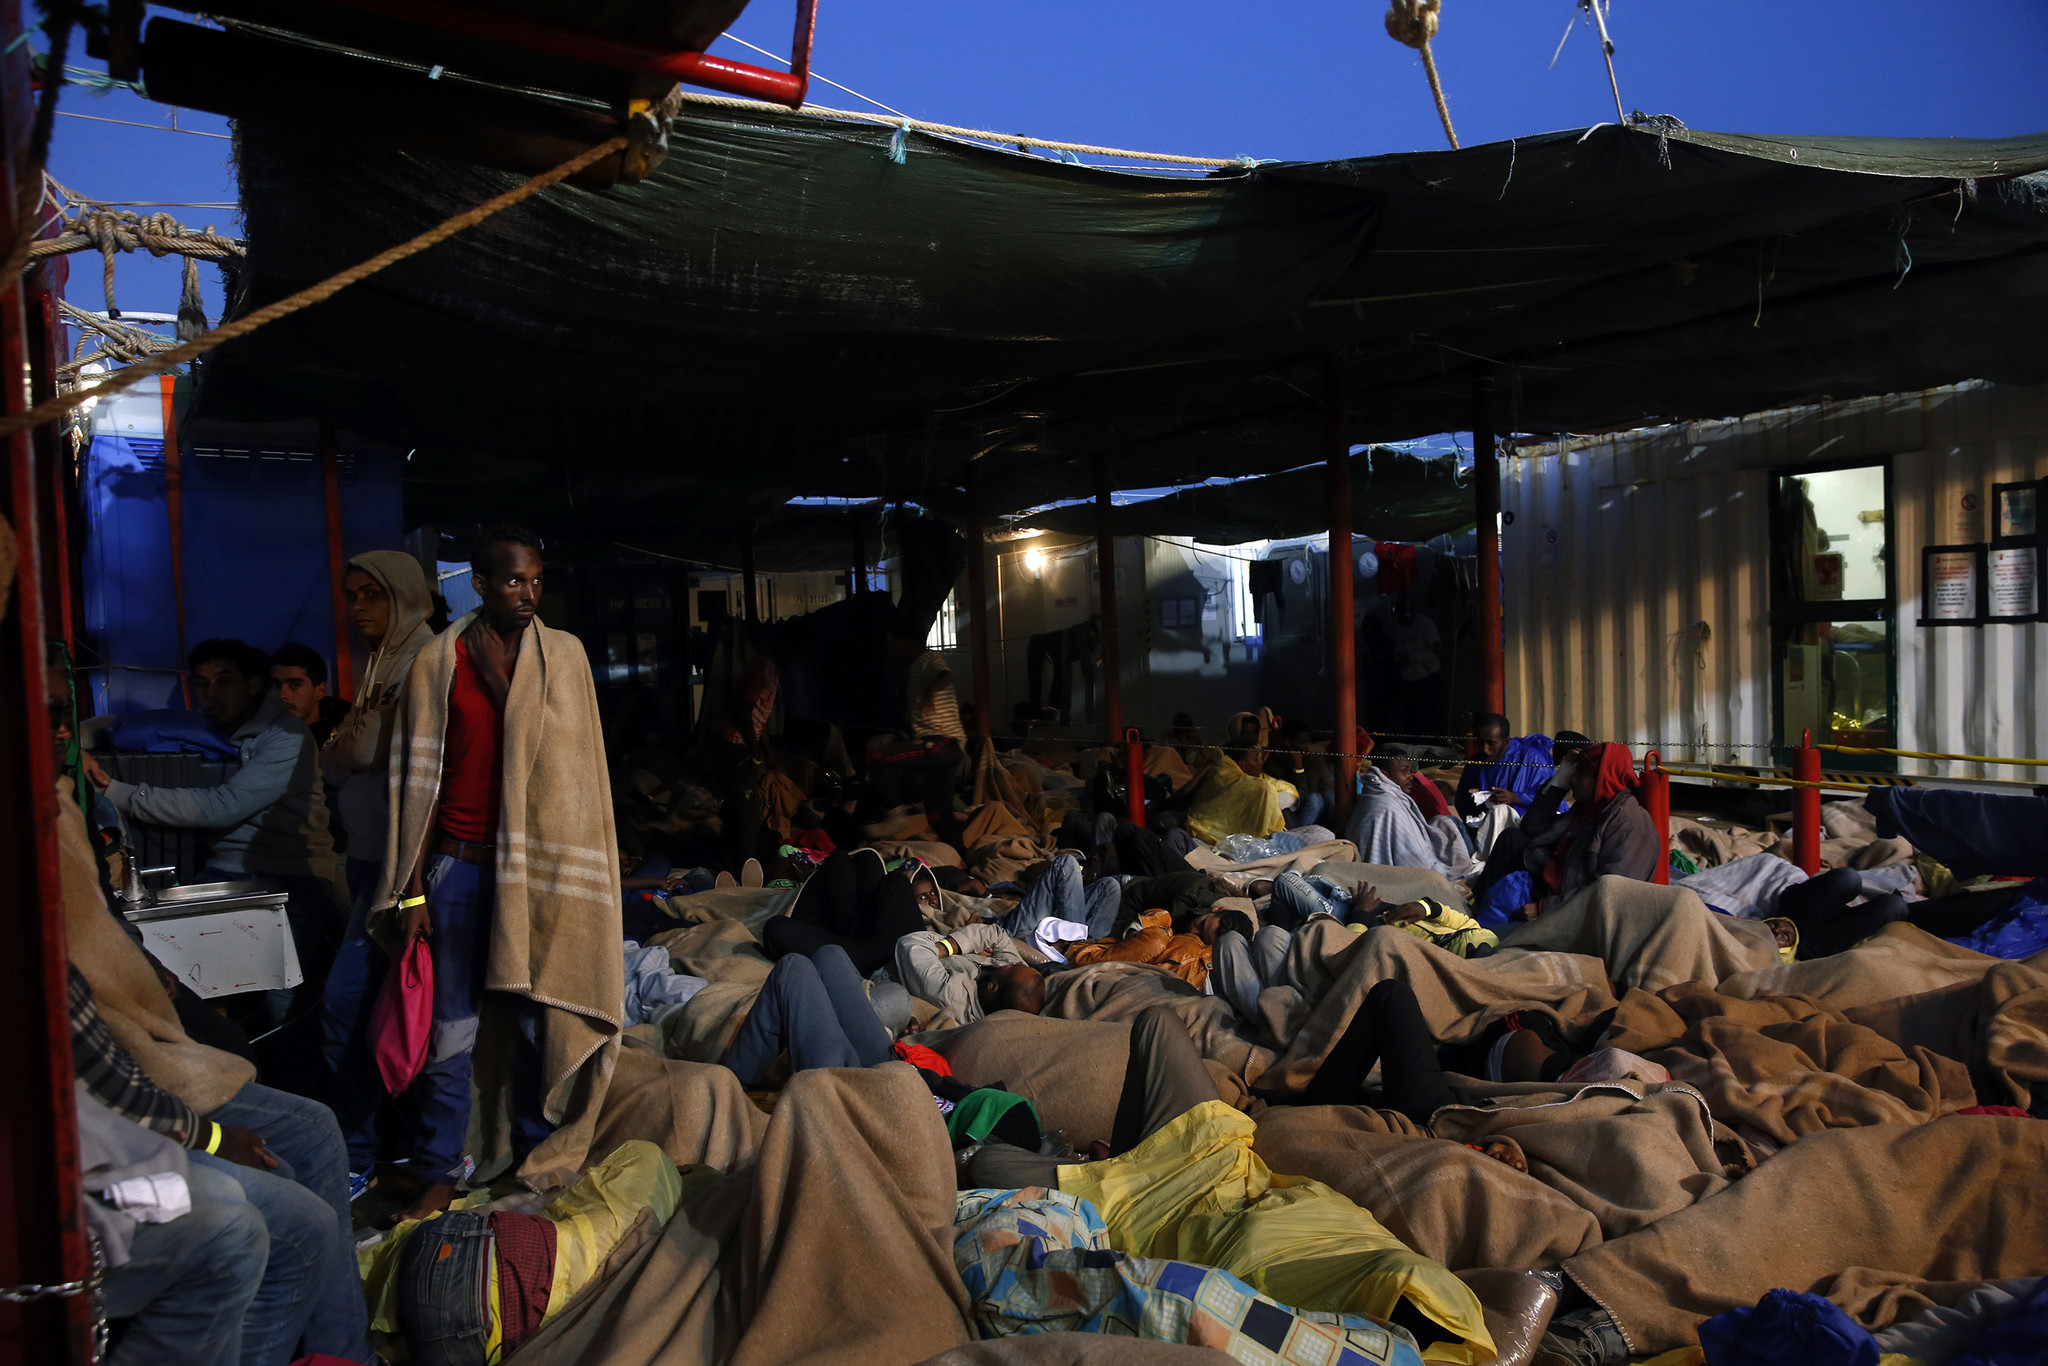 Migrants sleep on the deck of the rescue ship Vos Hestia, operated by Save the Children, as it heads for Sicily. The migrants, of several nationalities, were bound for Europe.